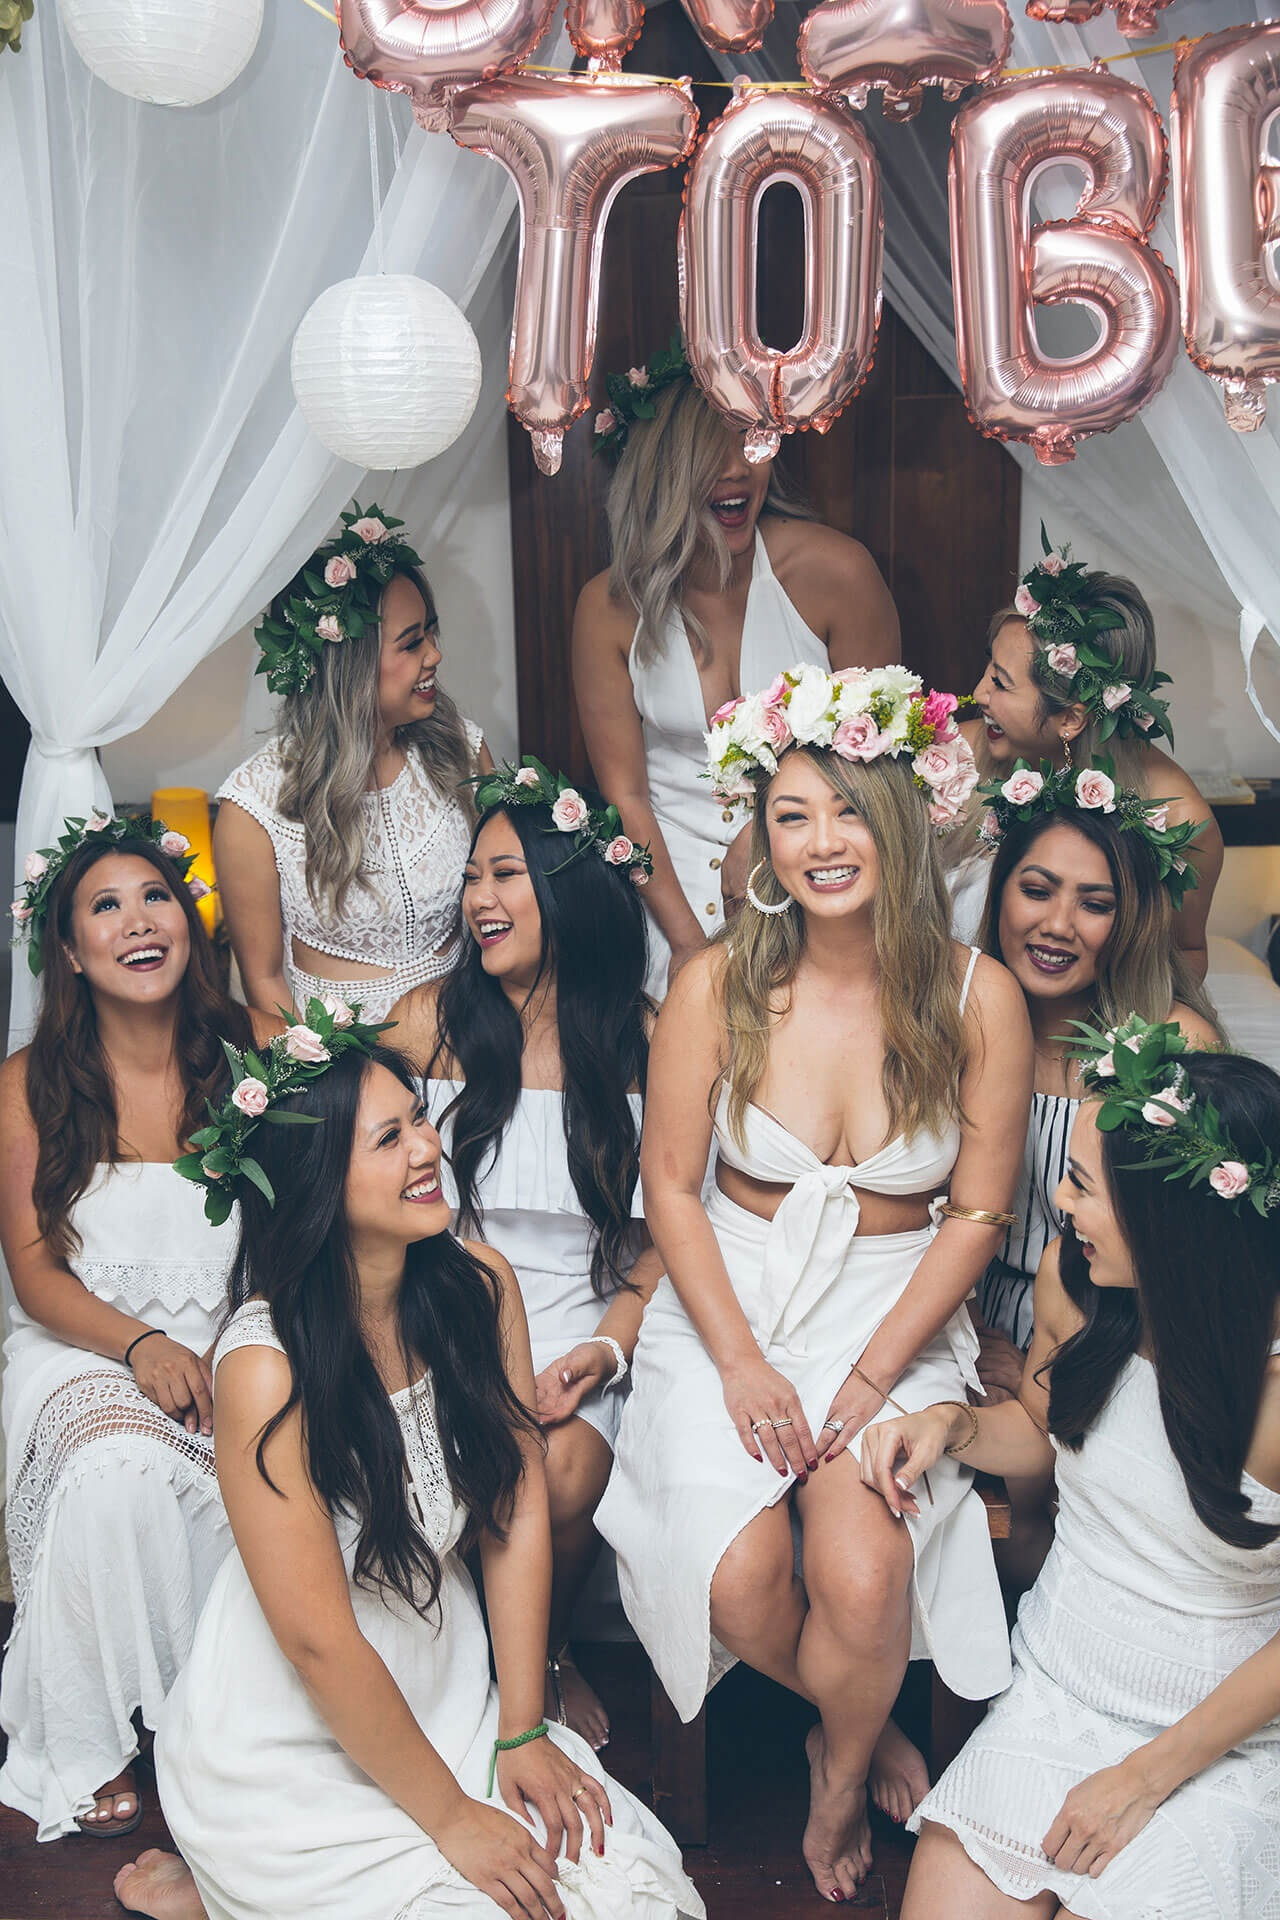 Flower crowns are not just a stunning accessory, but are a lot of fun and make for amazing pictures. Feel free to order flower crowns which will be delivered to your villa, condo, or hotel.